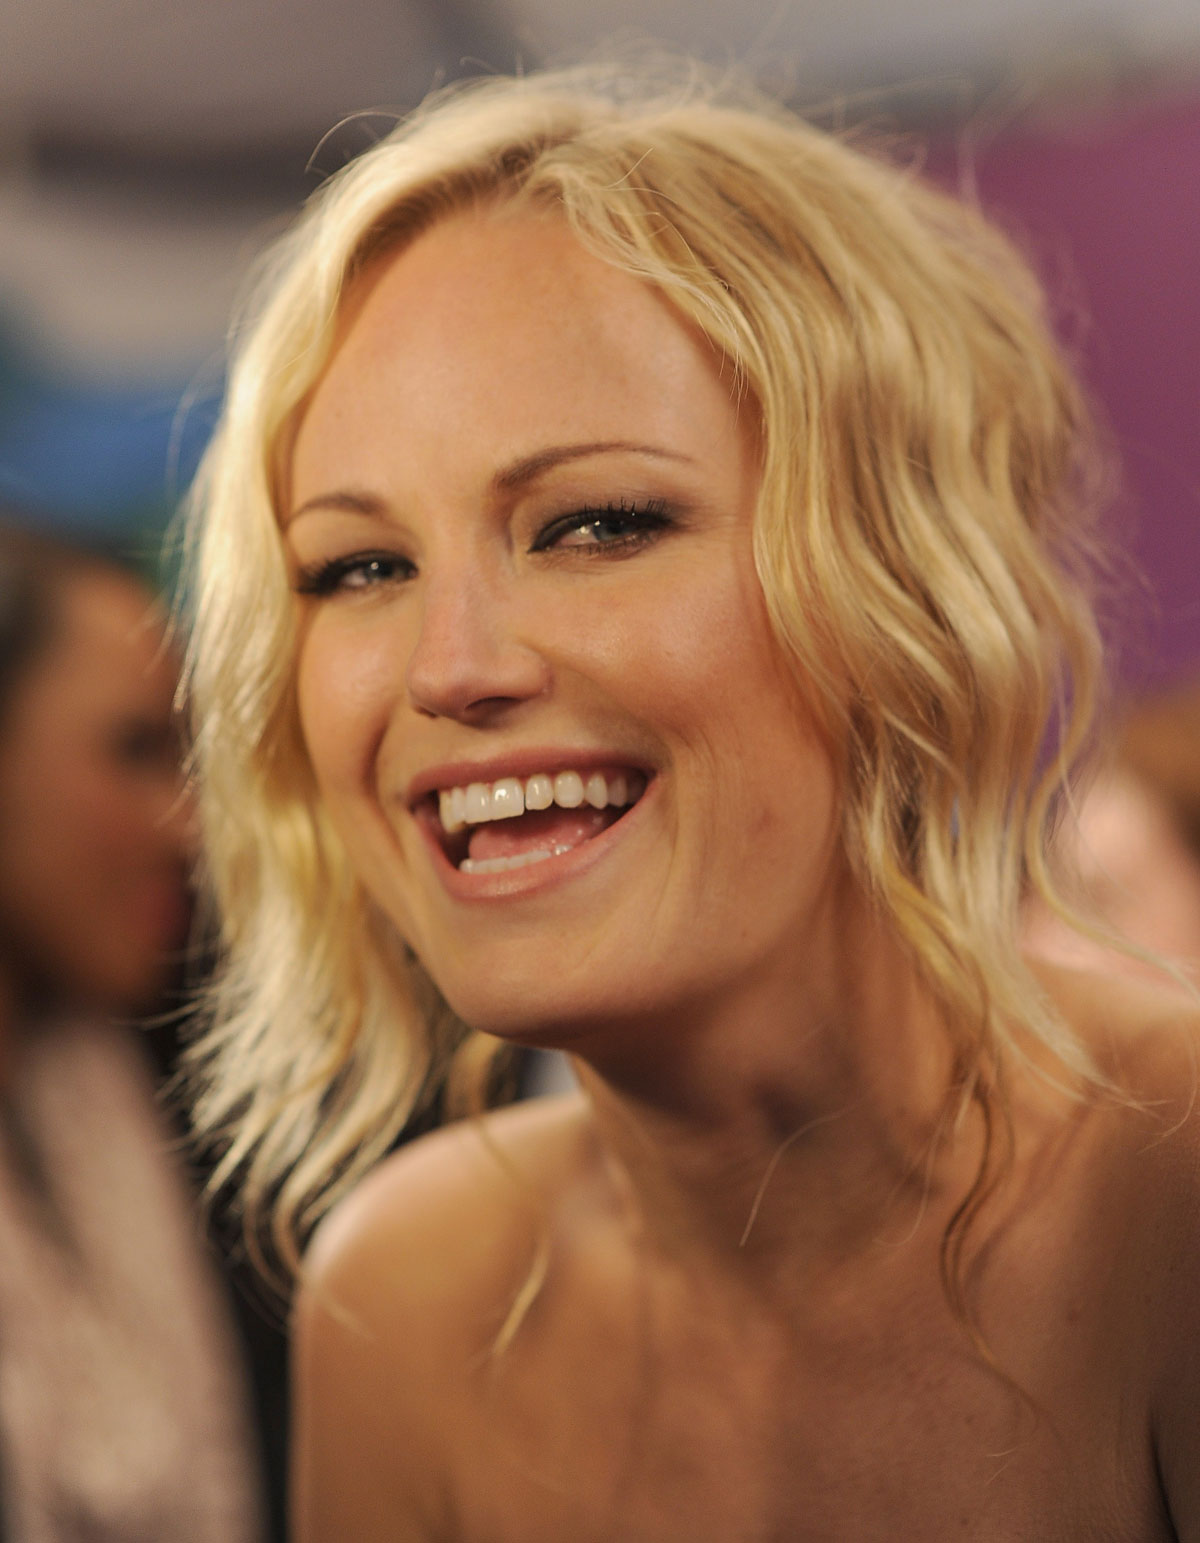 malin men Watch malin akerman - 21 pics at xhamstercom xhamster is the best porn site to get free porn pictures.